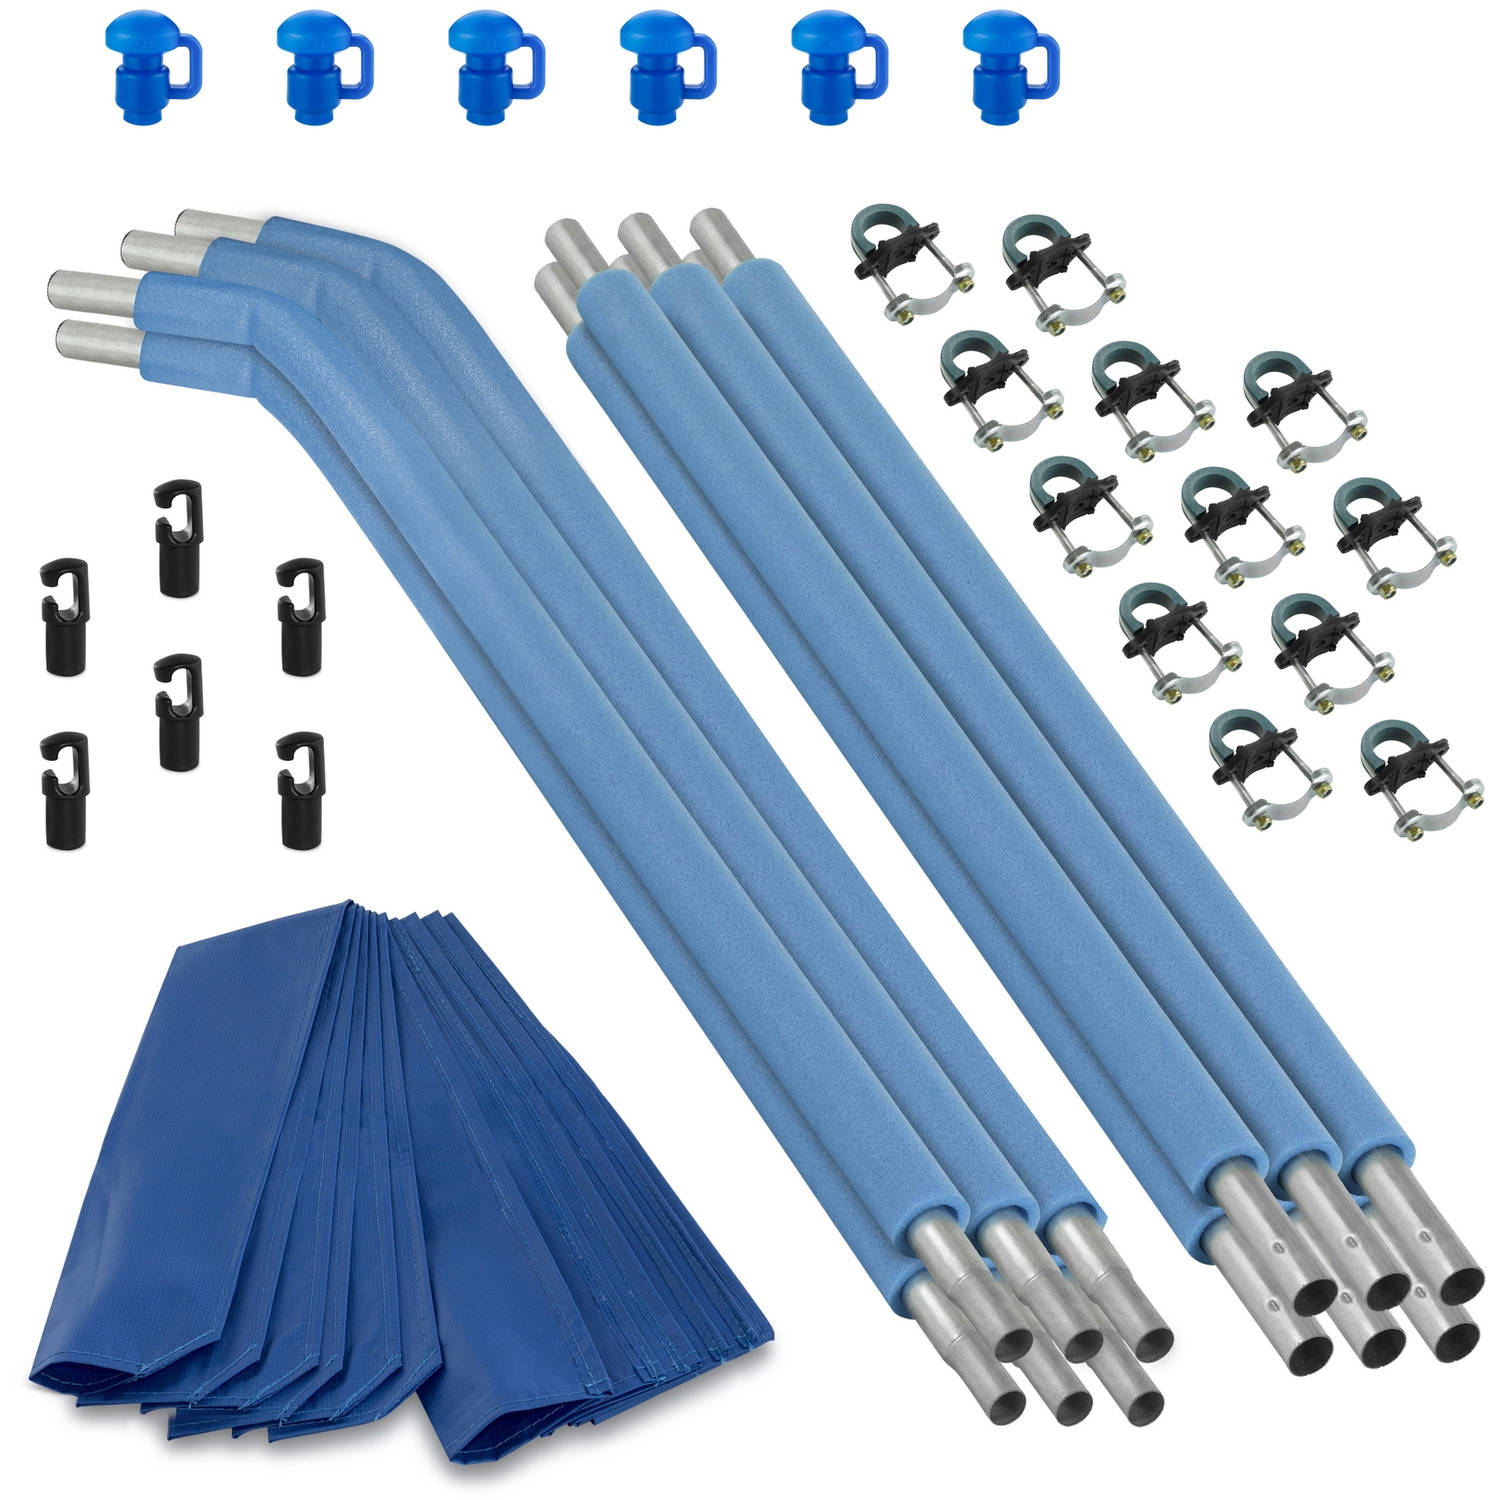 Trampoline Replacement Enclosure Poles & Hardware, Designed For Top Ring Enclosure System, Set of 6 (Net Sold Separately)